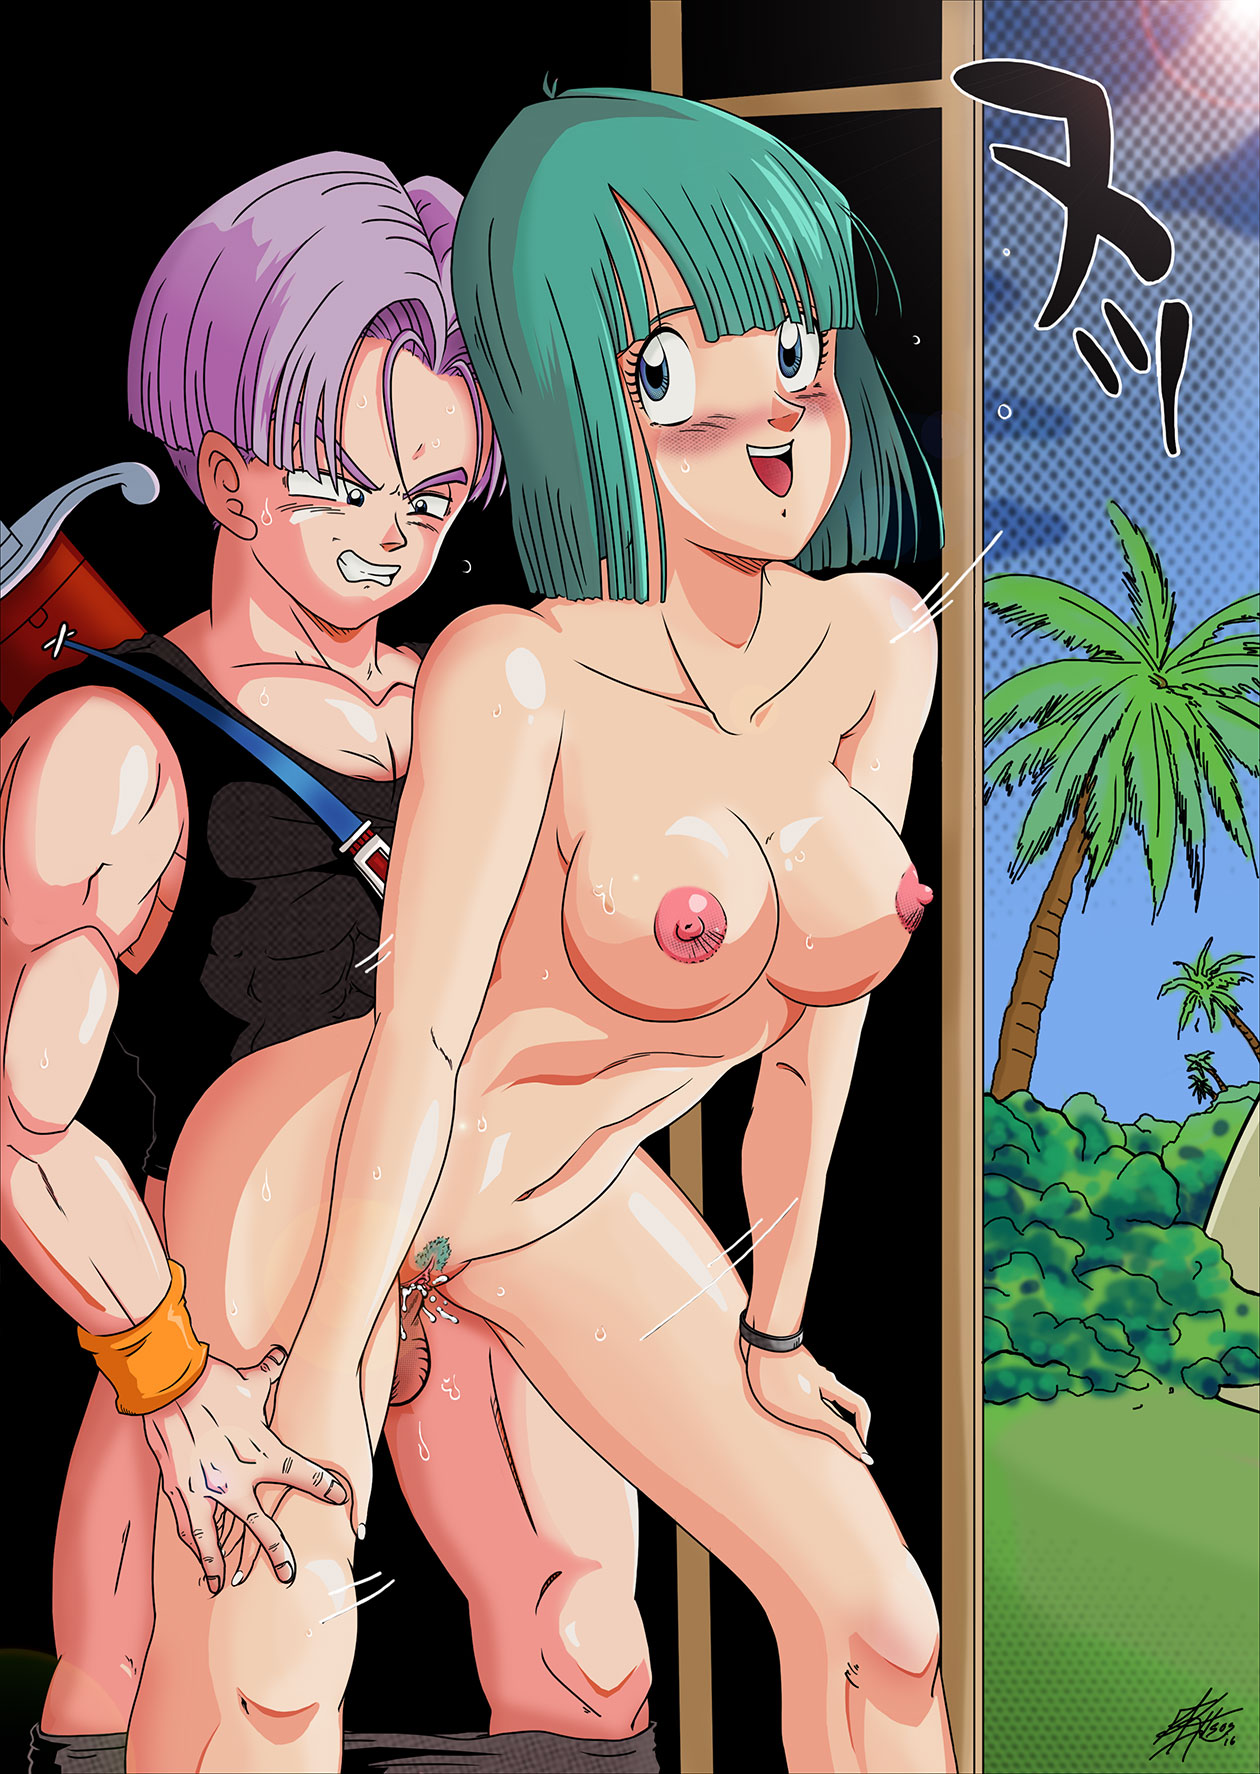 Anime dragon ball z bulma porn pity